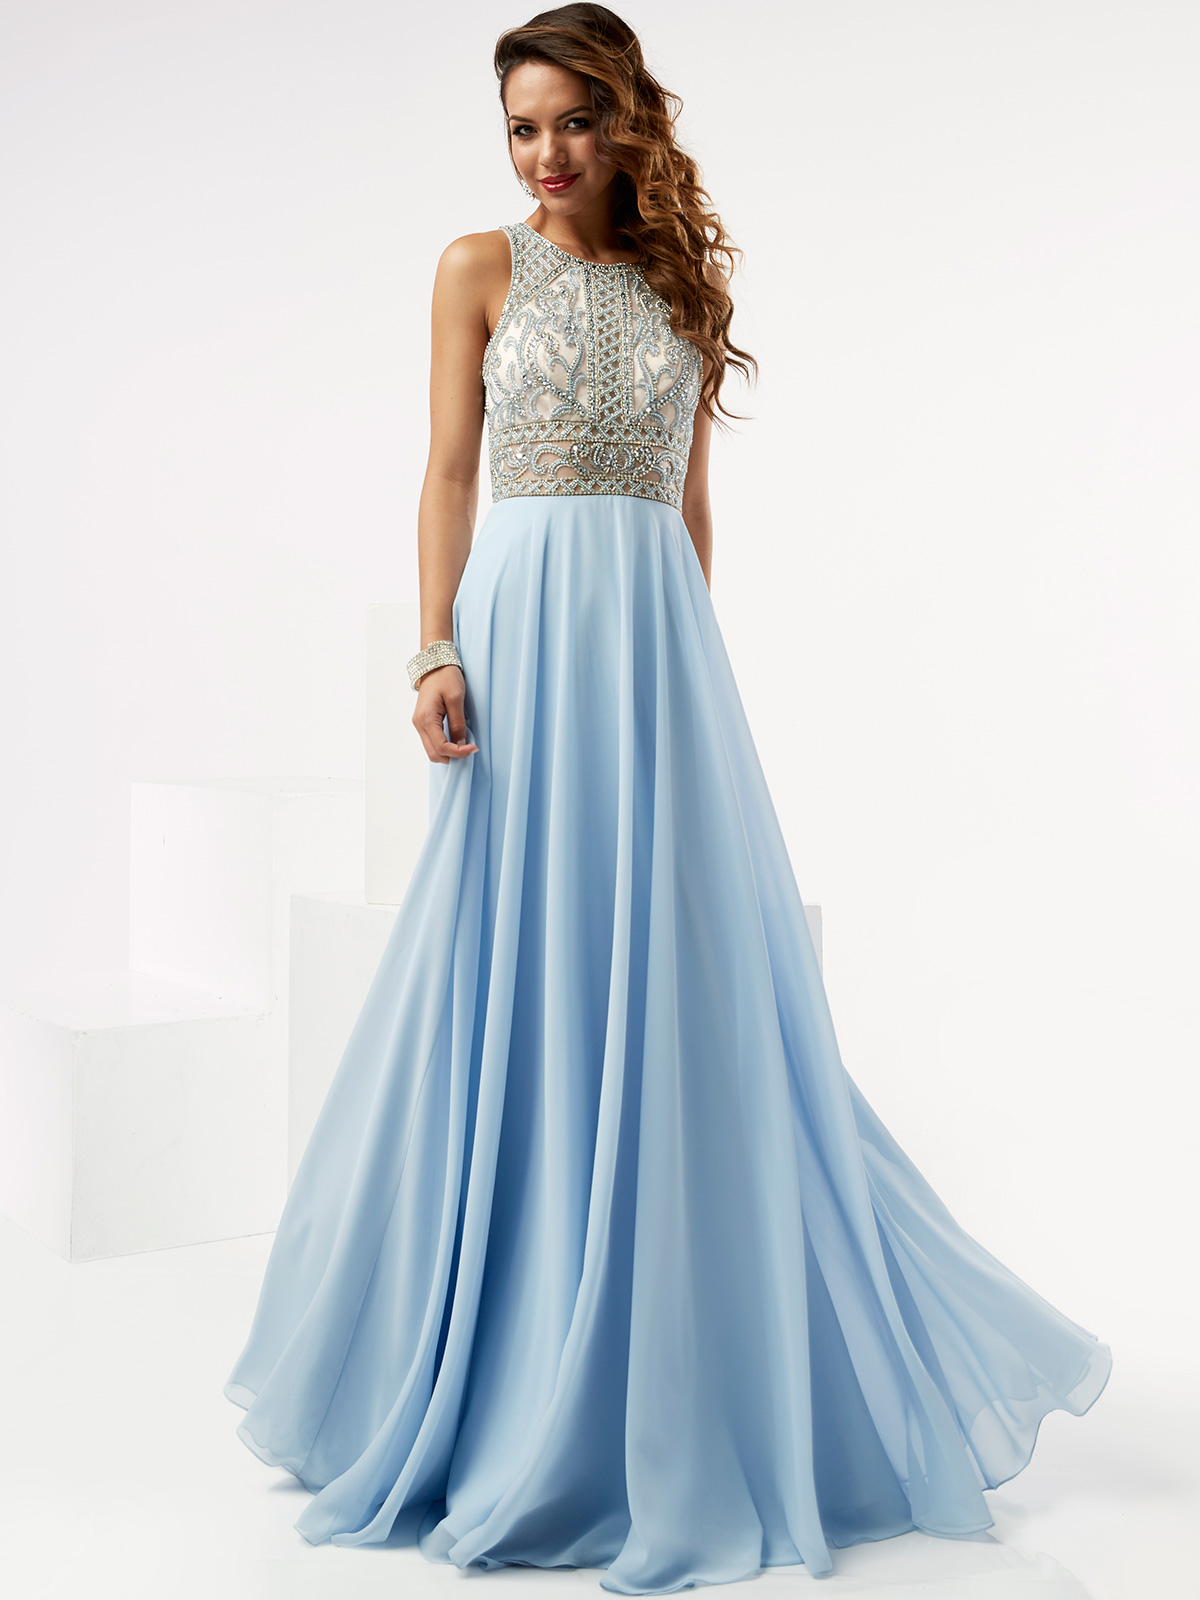 Jasz Couture 6072 High Neck Beaded Prom Gown|DimitraDesigns.com